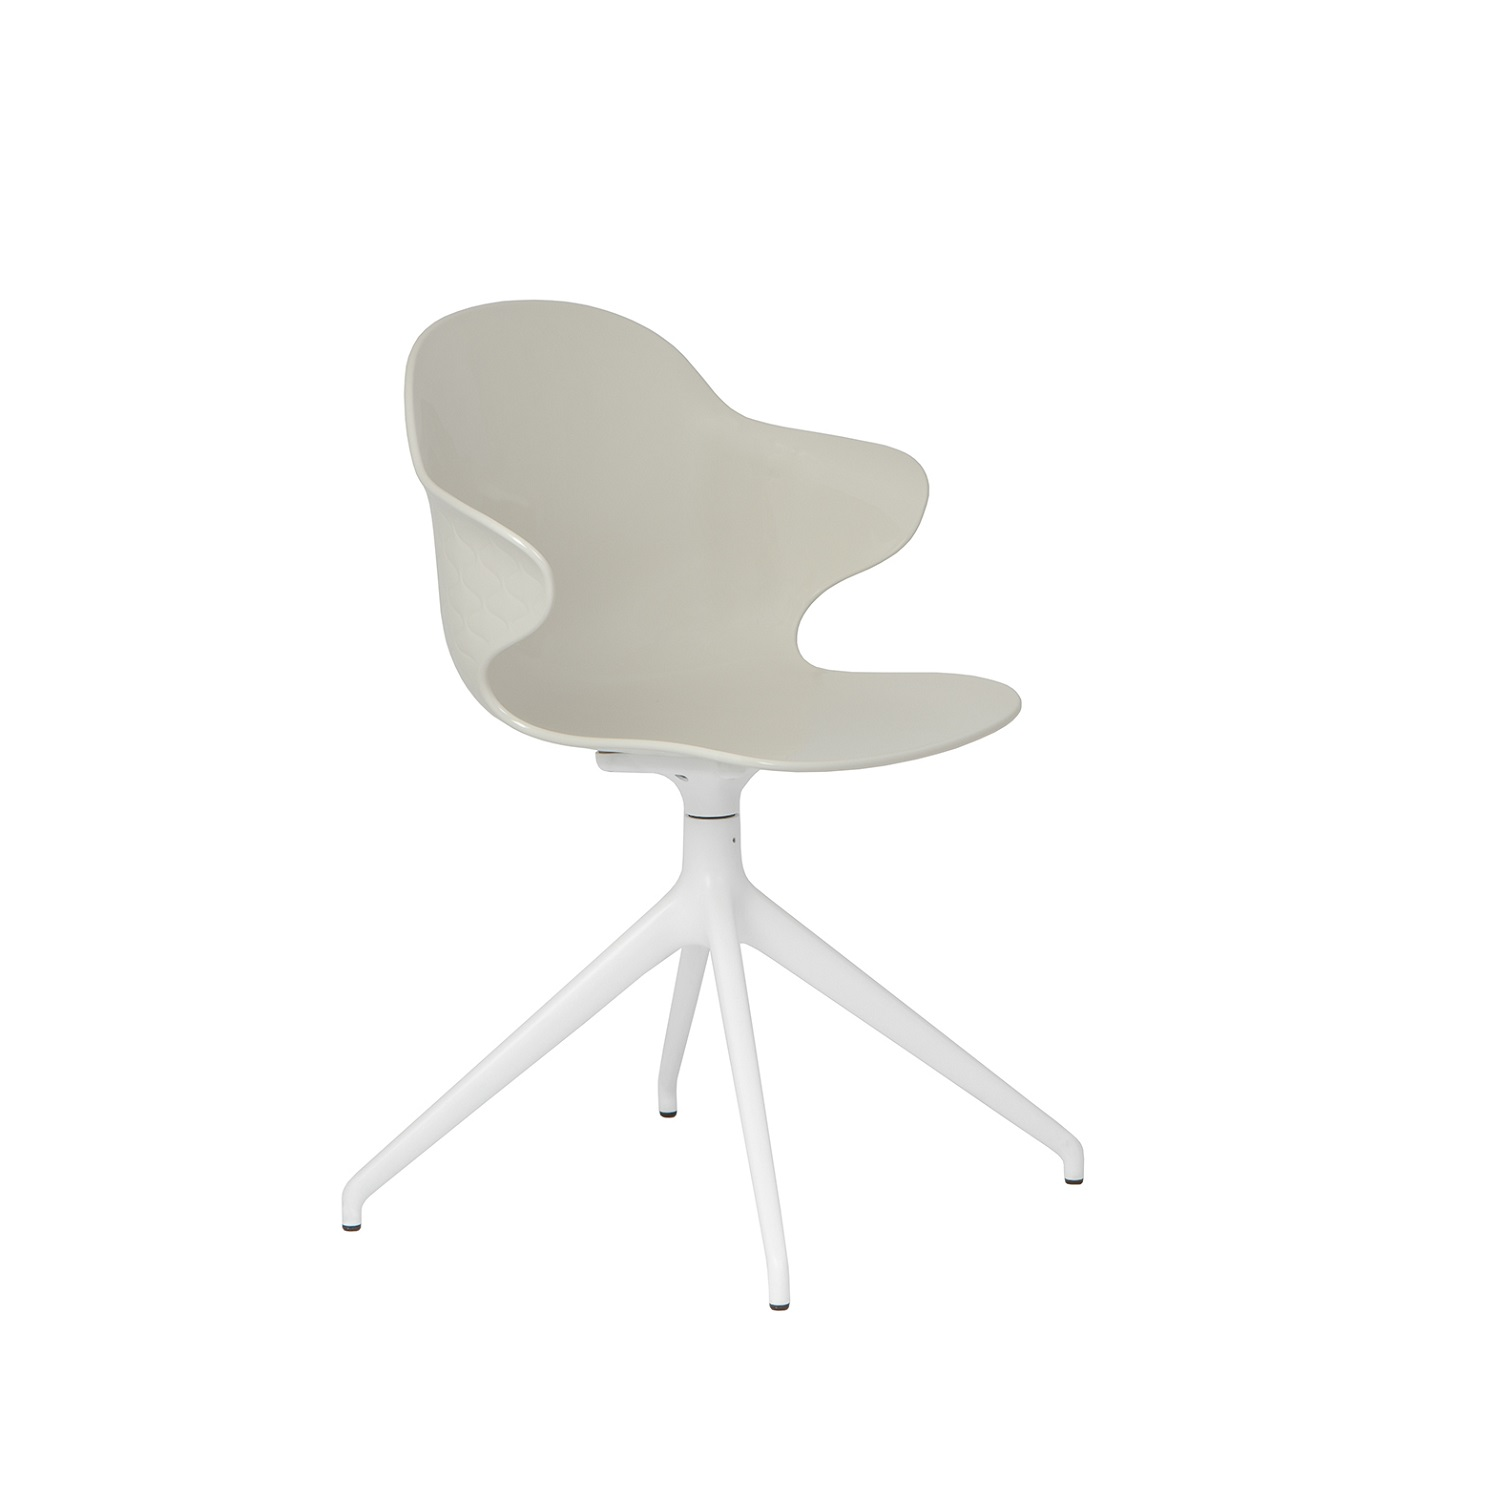 Saint Tropez Dining Chair with Swivel